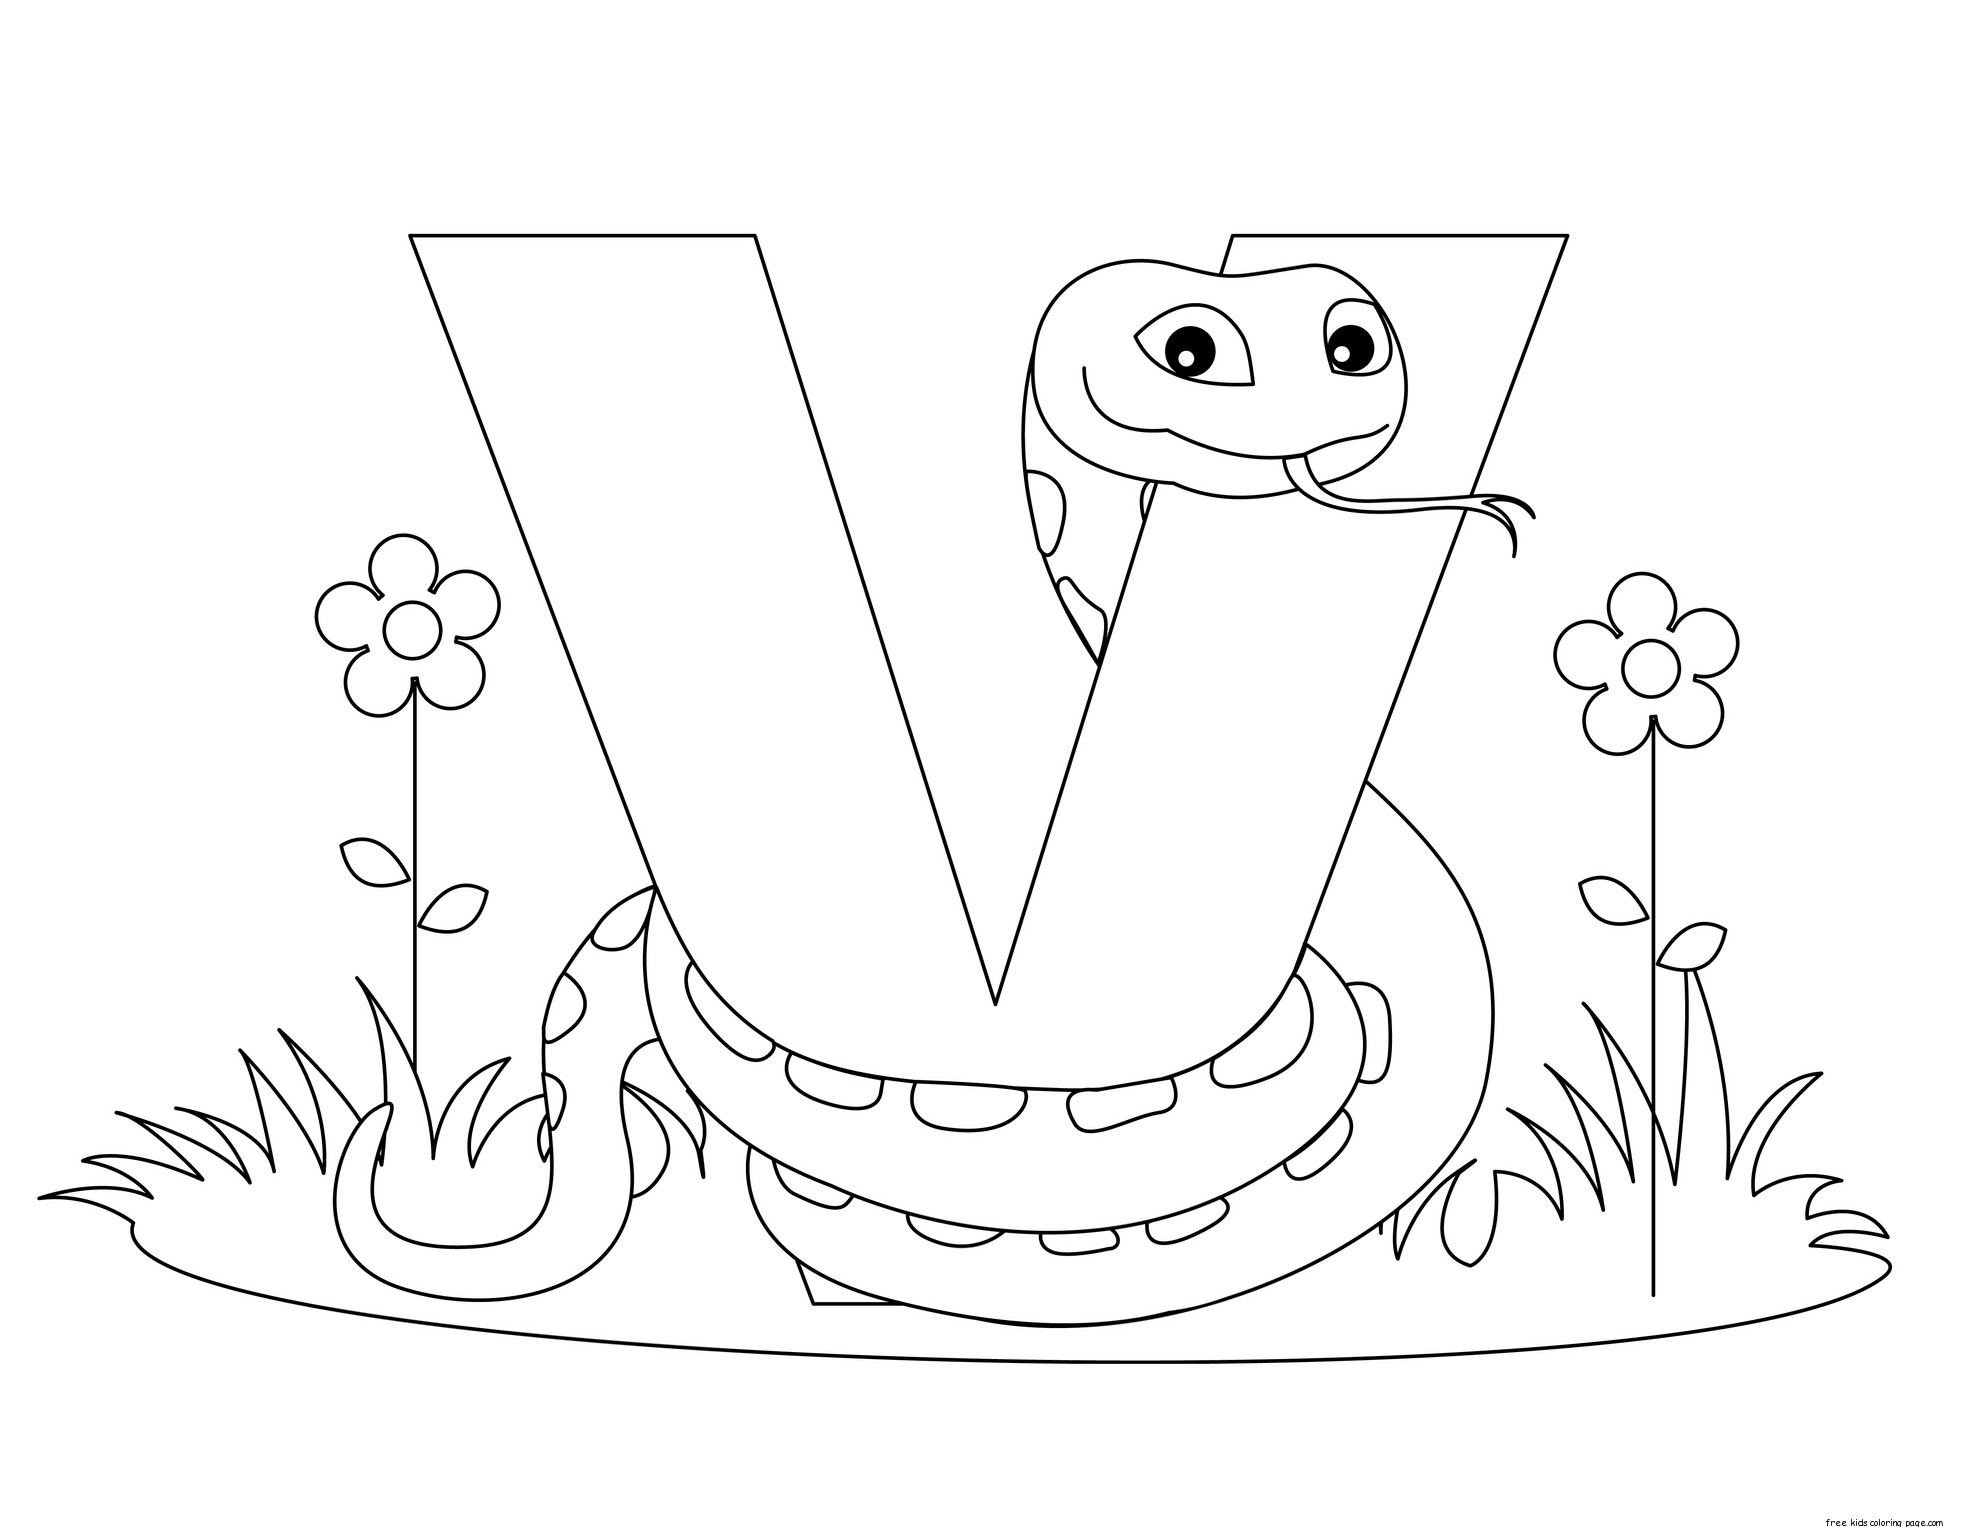 Printable Traceable Alphabet Letter V Worksheet For Viperfree Printable Coloring Pages For Kids